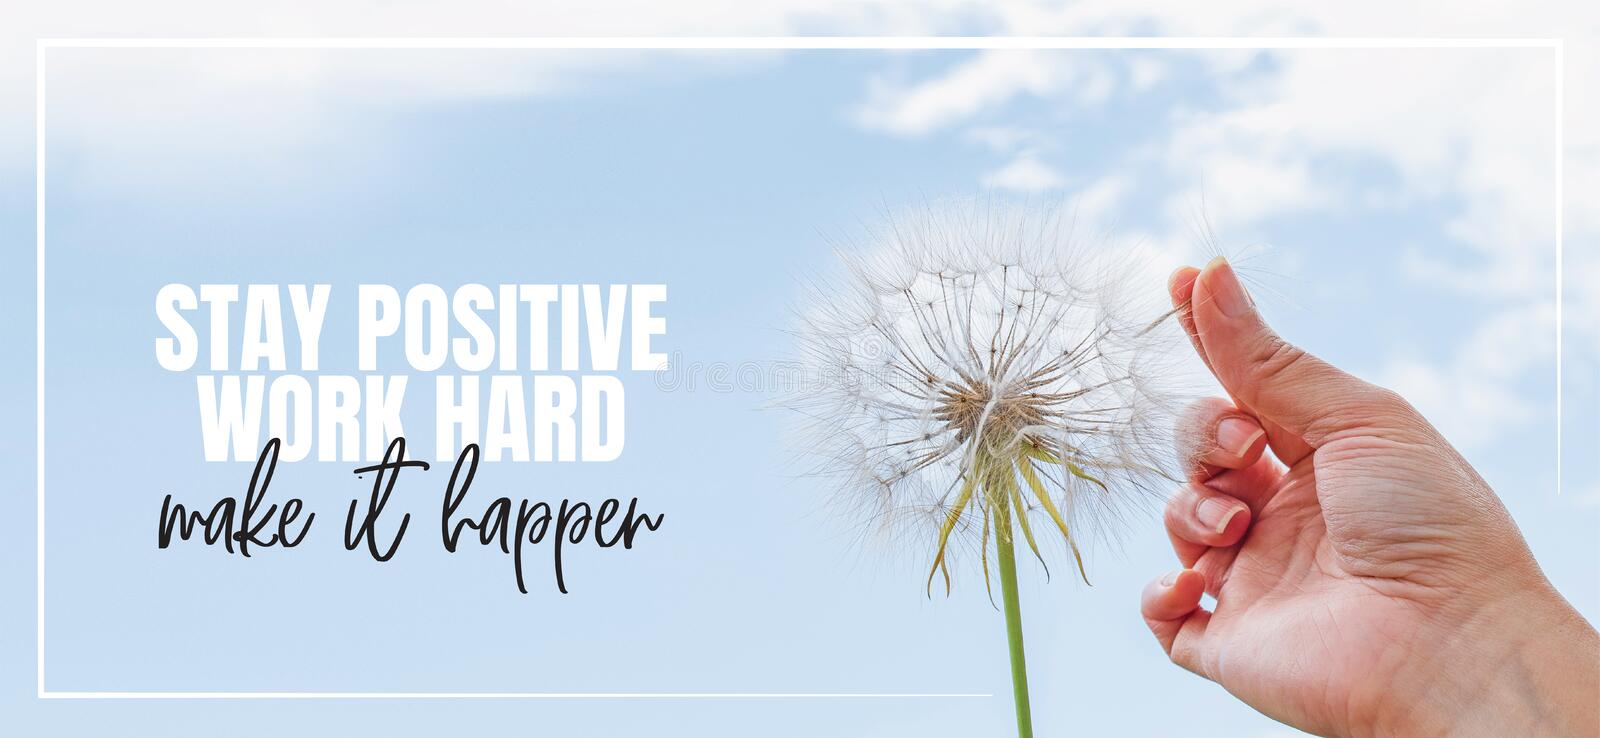 Stay positive, work hard, make it Happen. Hand holding Dandelion flower pointing to blue sky, close up photography, banner design. Poster design. Positive stock photos